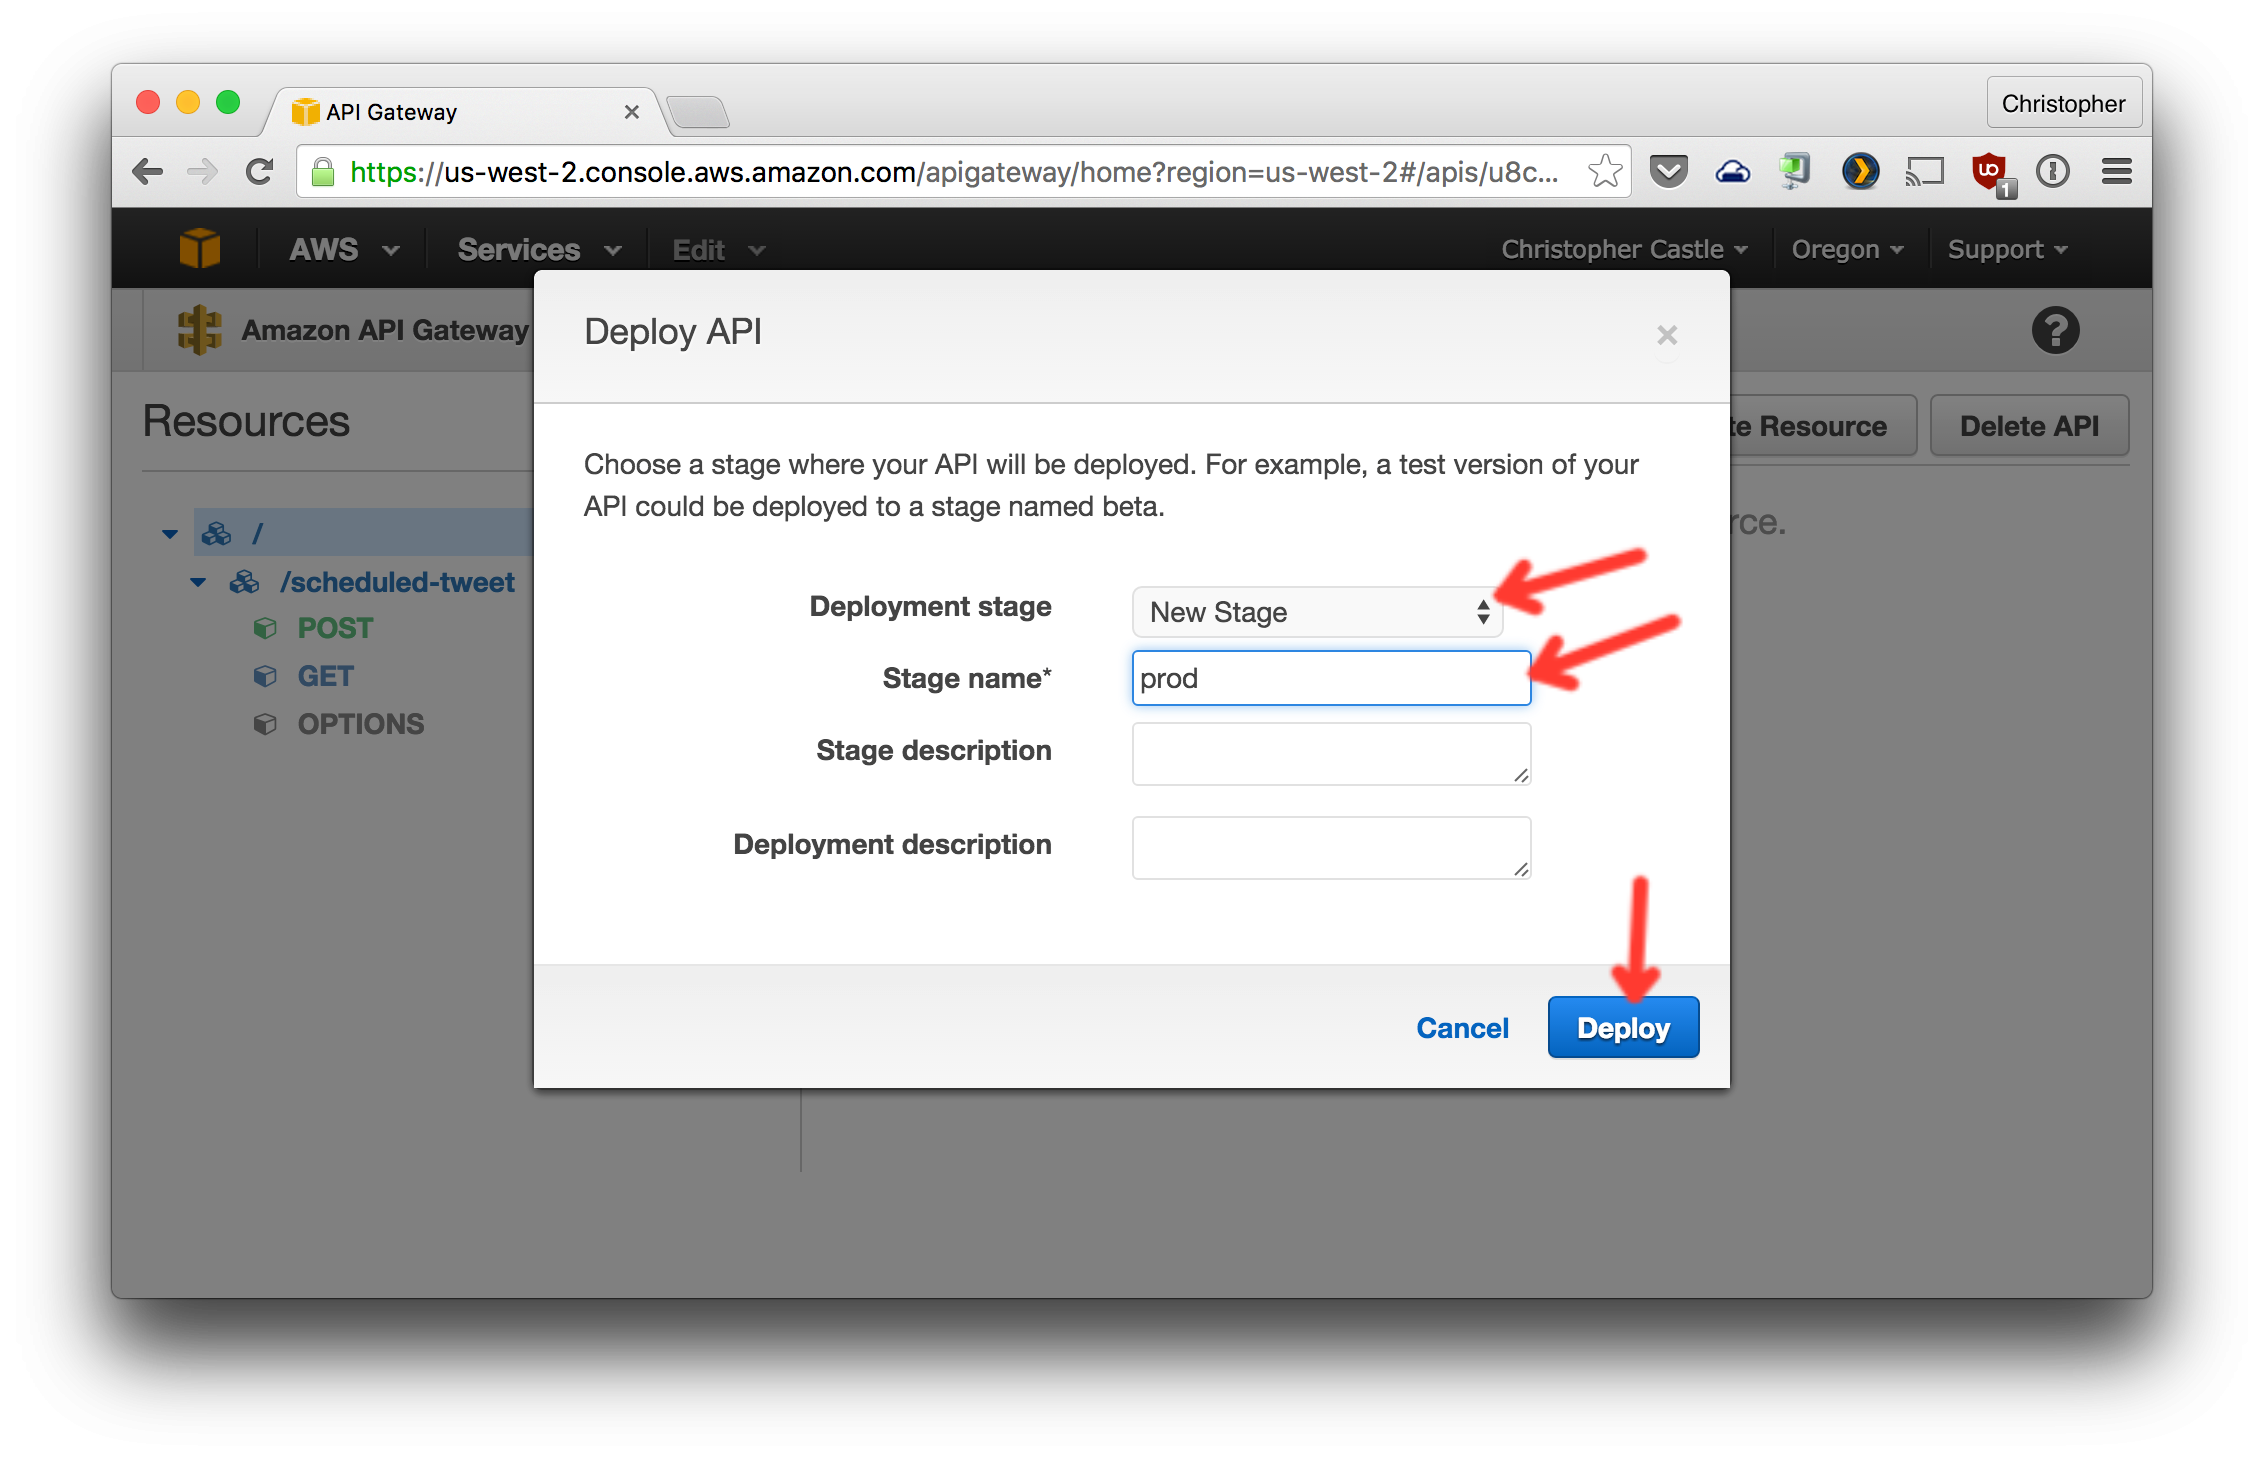 Configure deploy and create stage